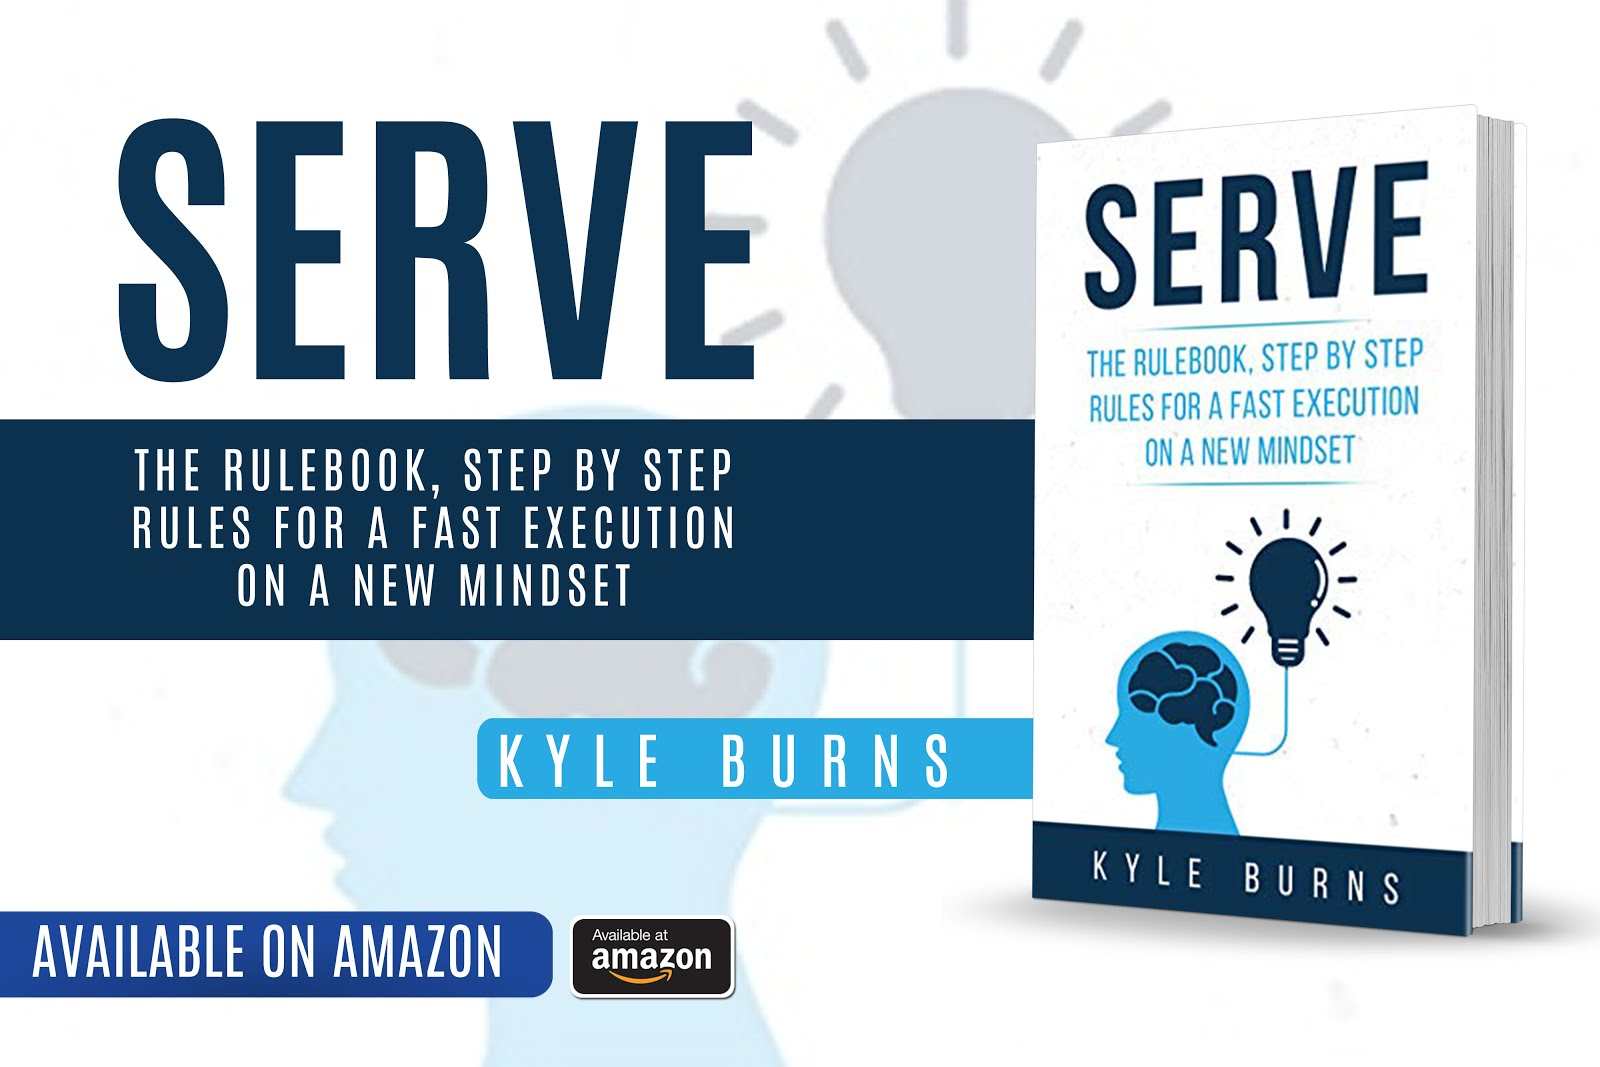 Serve: The rulebook, step by step rules for a fast execution on a new mindset